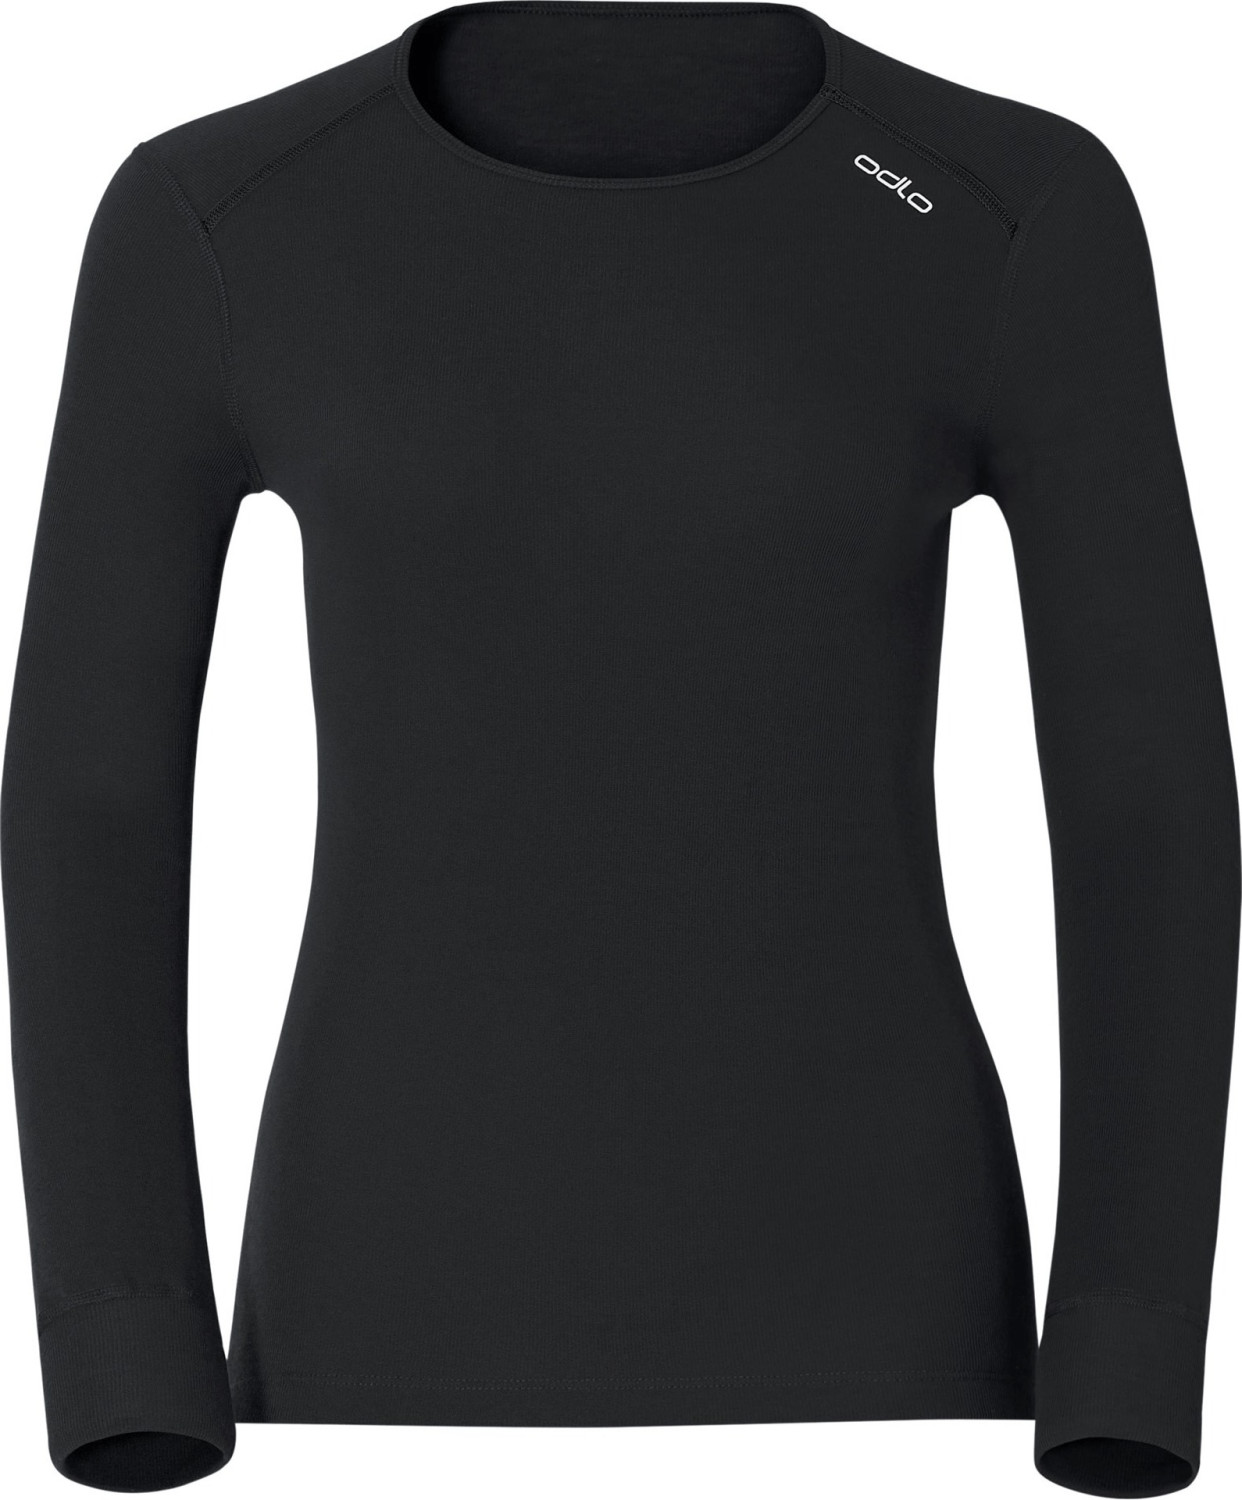 Odlo Shirt l/s Crew Neck Warm Women (152021) black